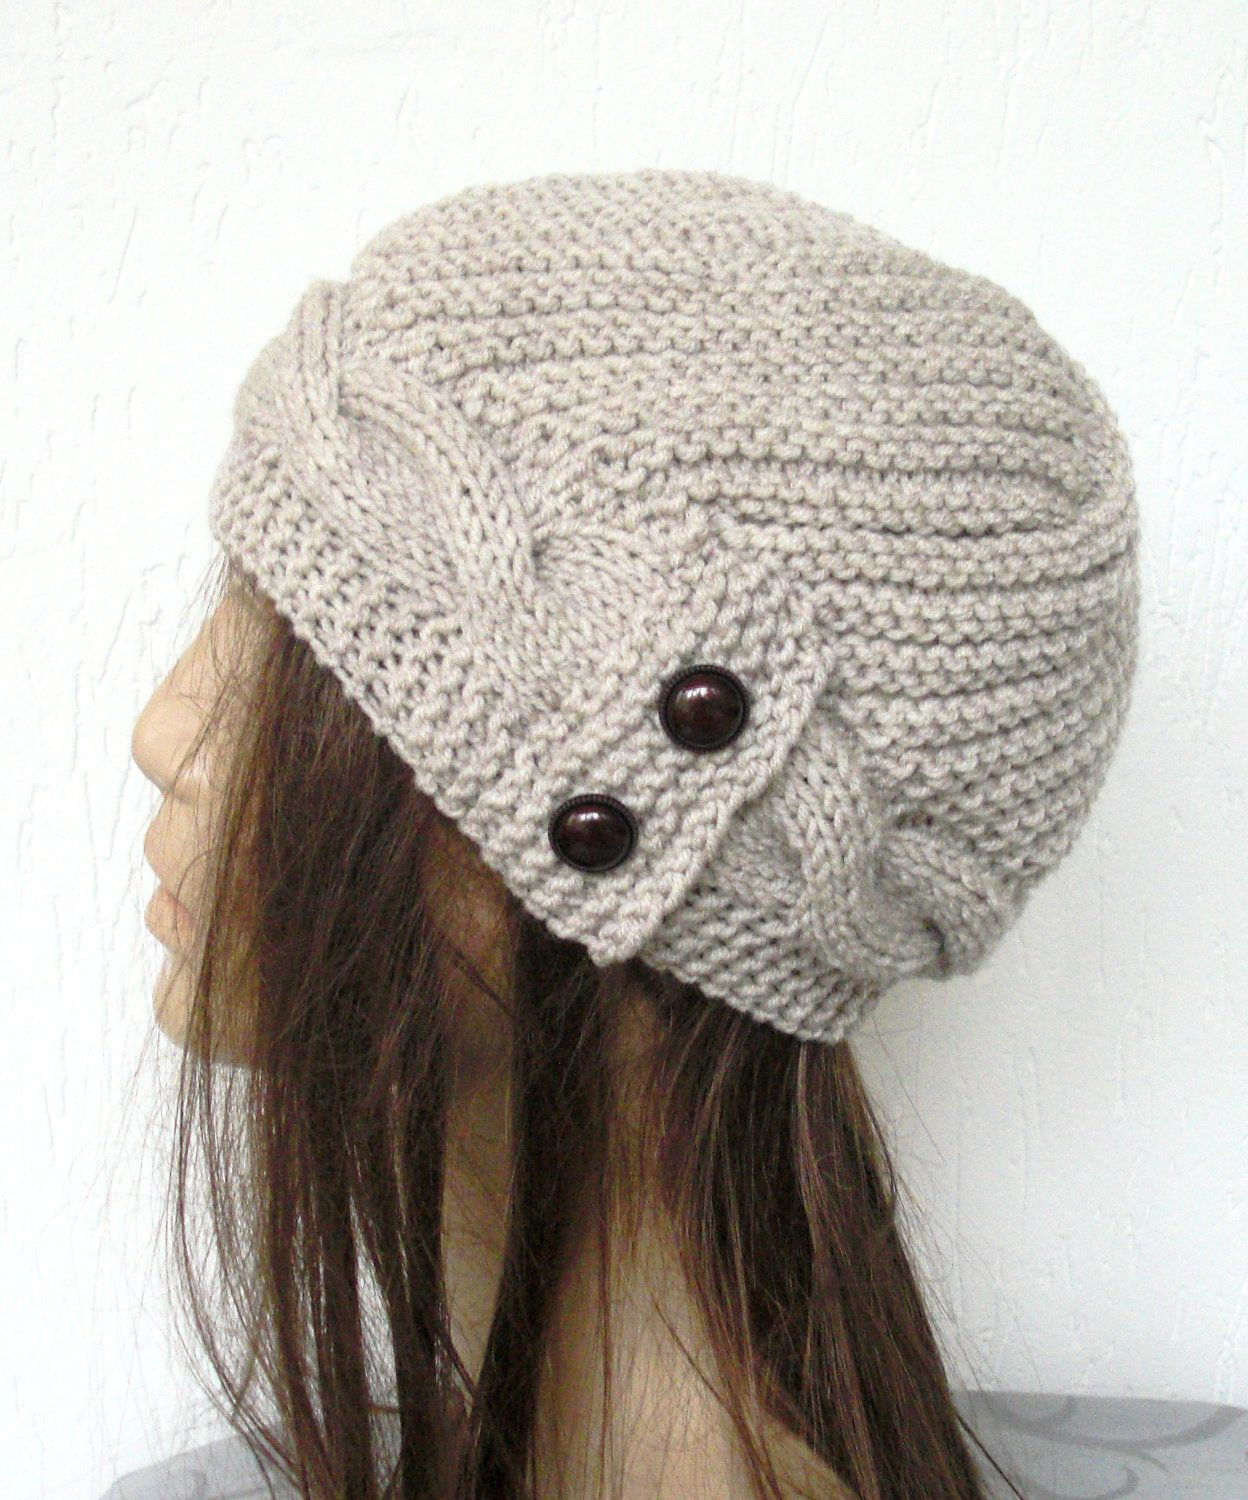 Hand Knit Hat- winter hat - Womens hat Cloche hat in Oatmeal Beige Winter  Accessories Fall Autumn Winter Fashion Cable knit hat.  35.00 41c8703e825